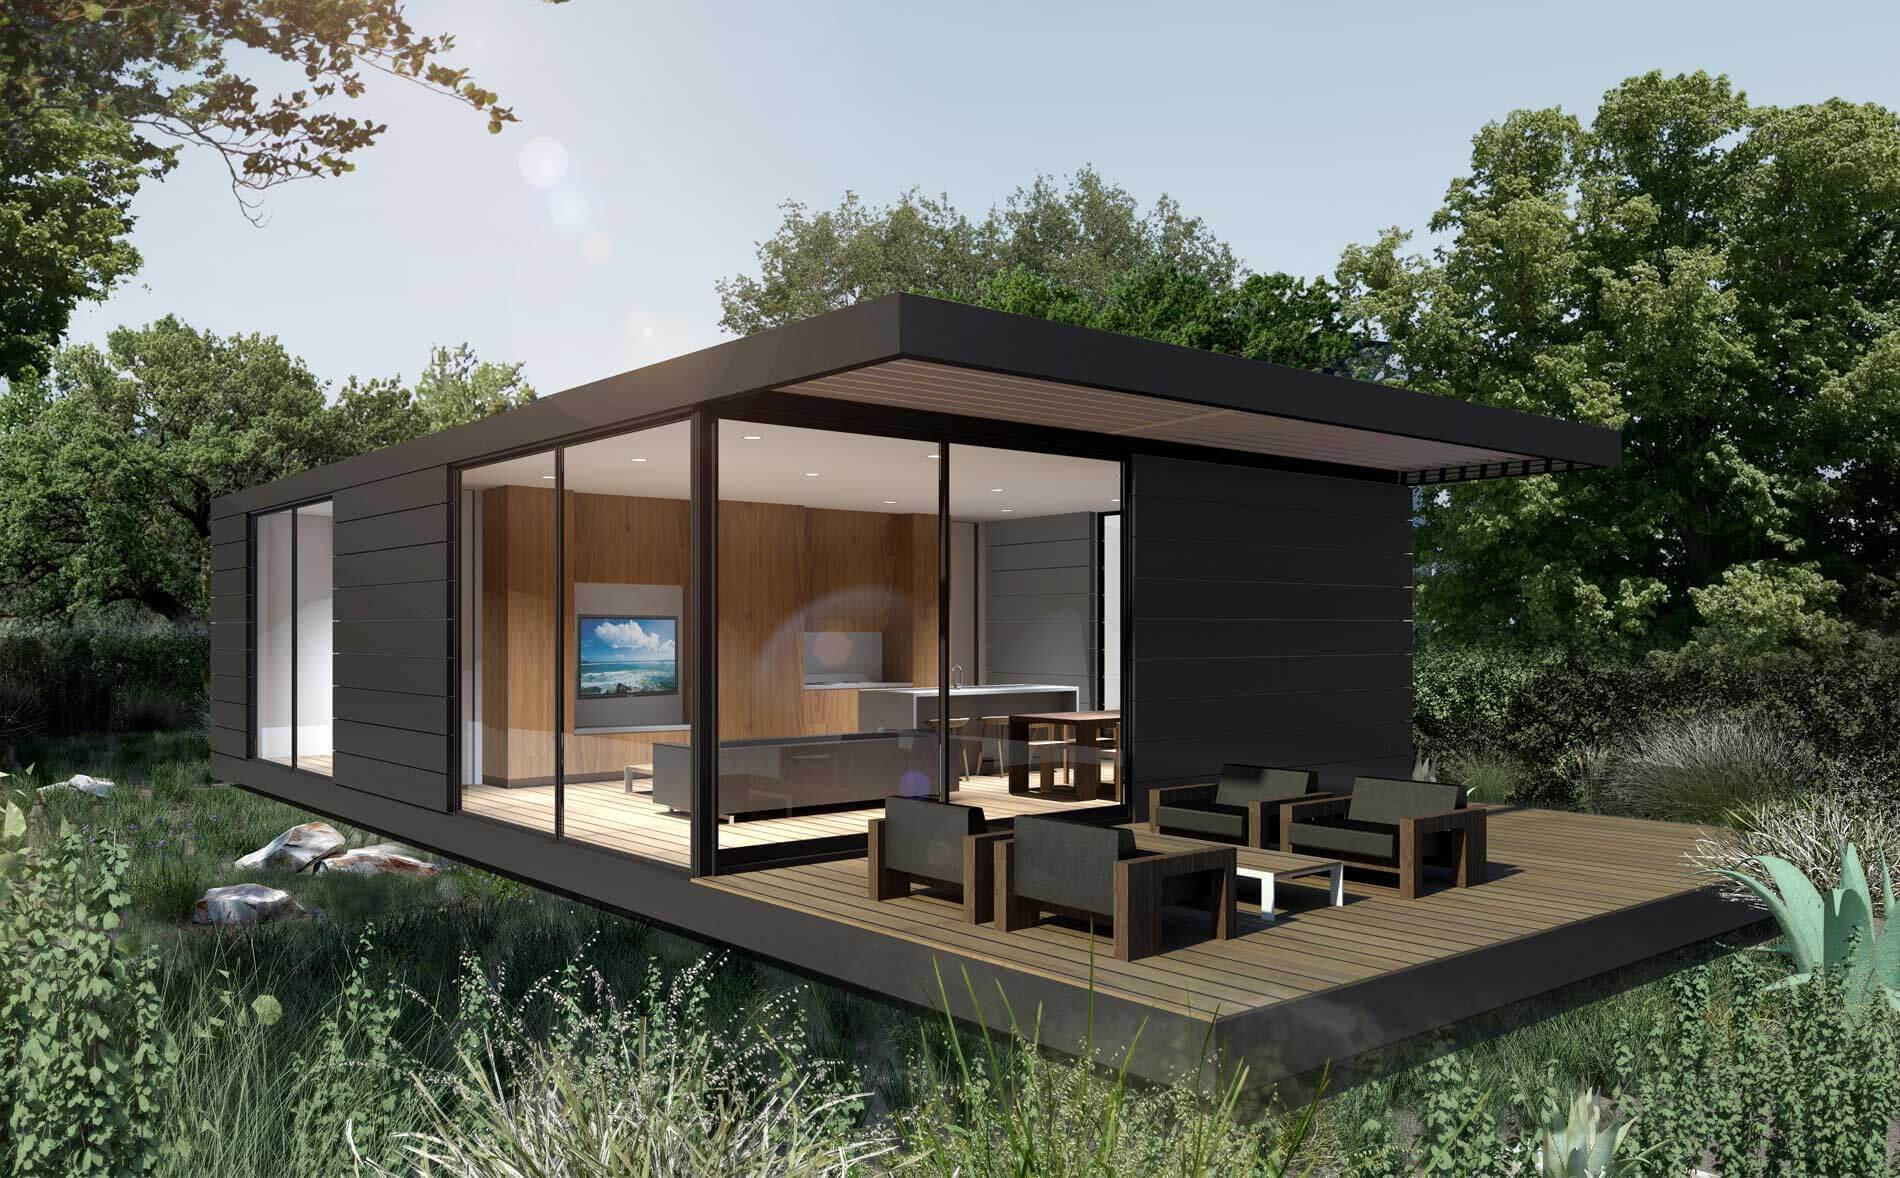 7 Designer Prefab Homes You Can Order Online